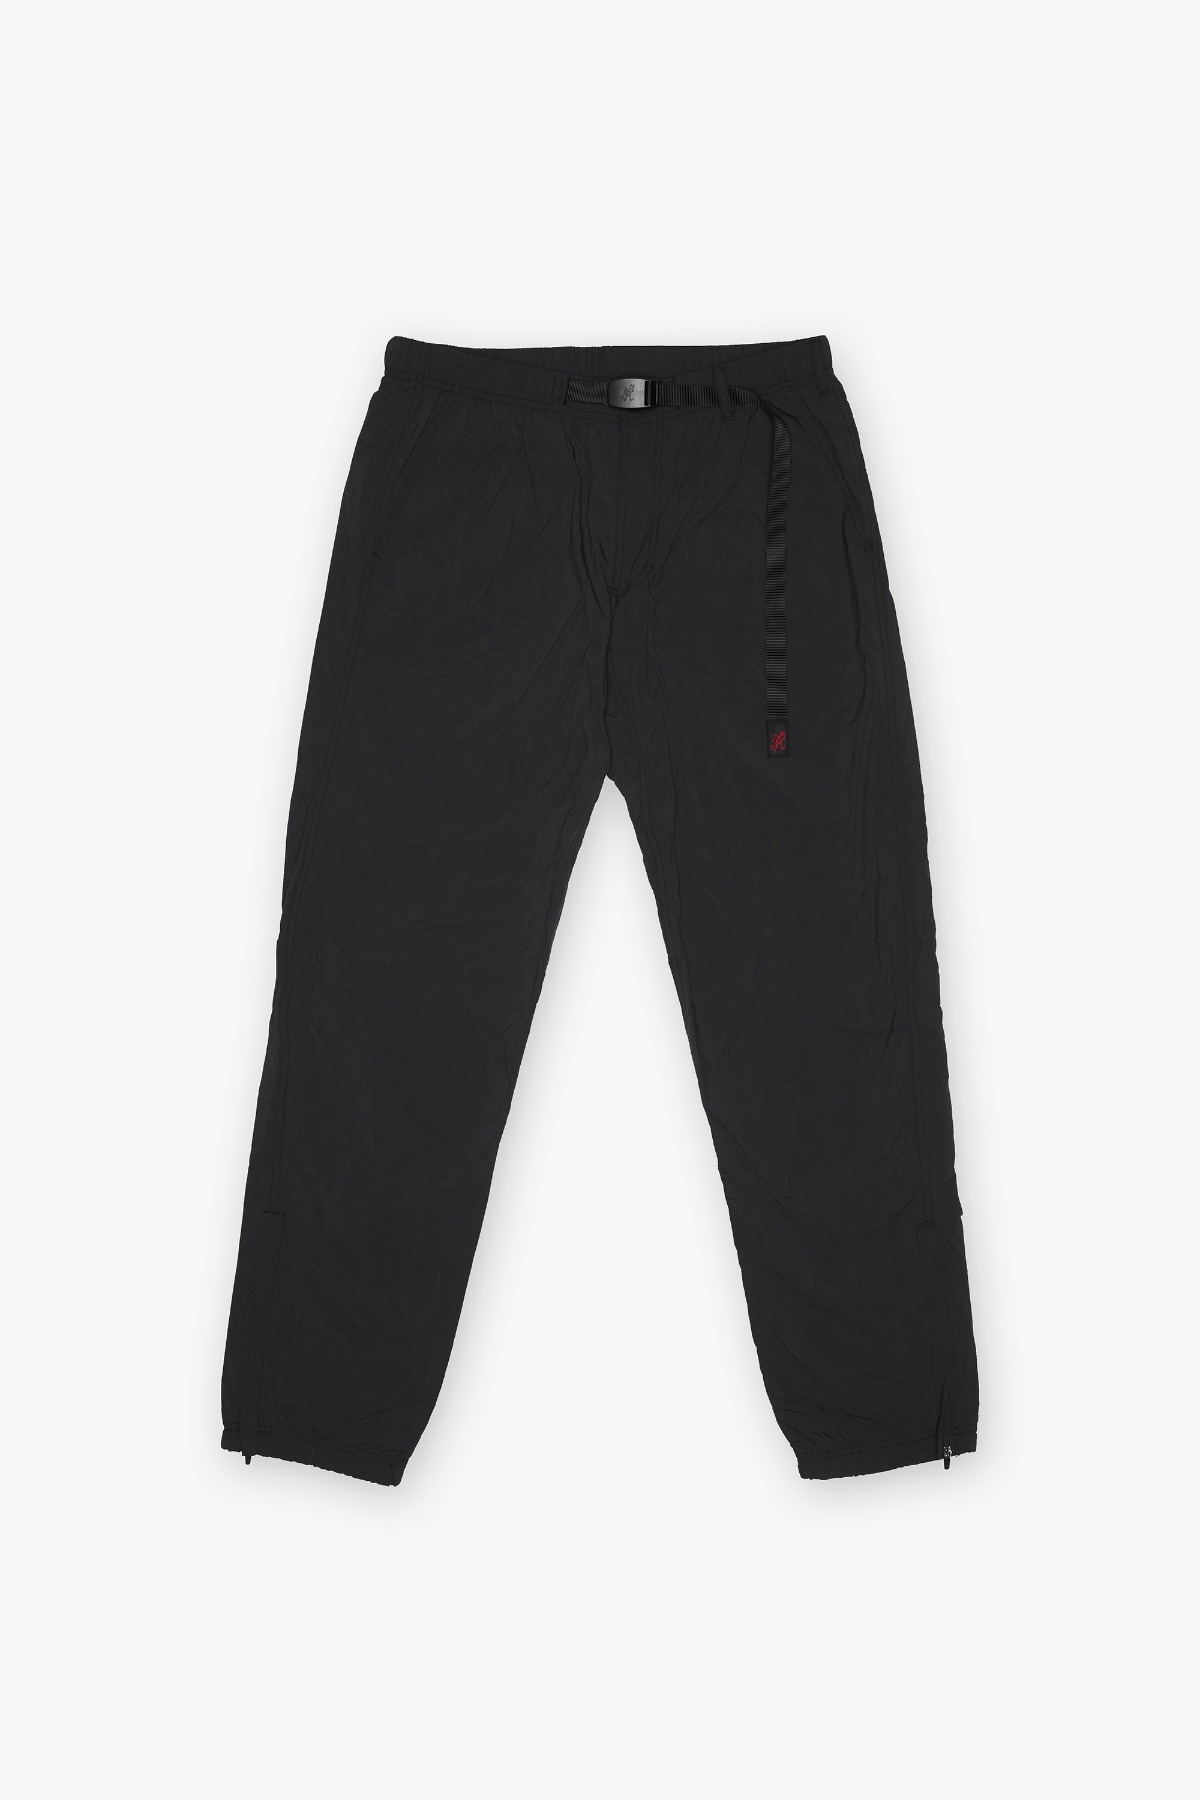 PACKABLE TRUCK PANTS BLACK